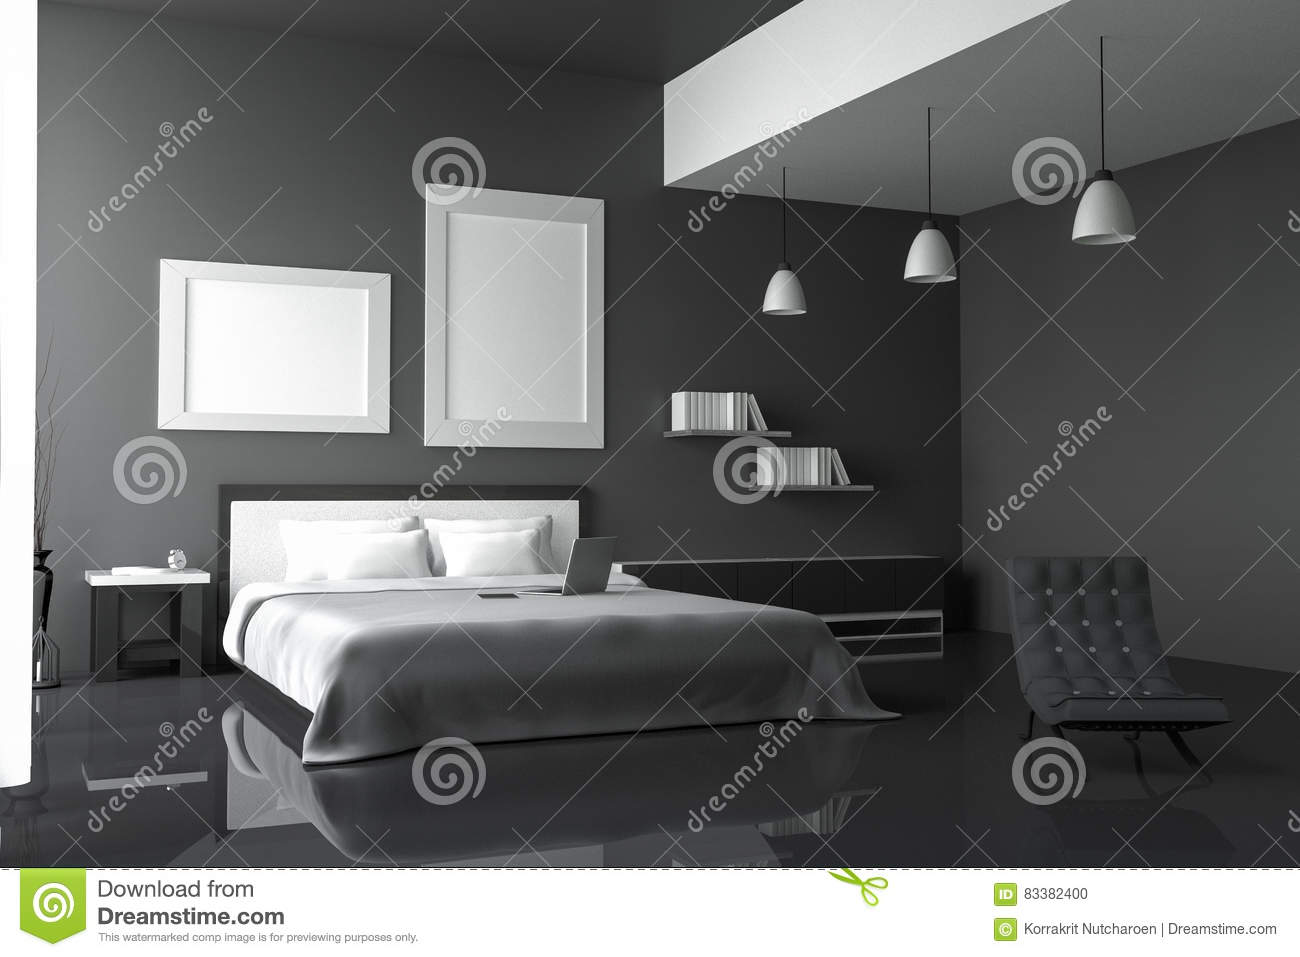 3d Rendering Illustration Of Modern House Interior Bed Room Part Of House Spacious Bedroom In Black And White Style Stock Illustration Illustration Of Luxury Hipster 83382400